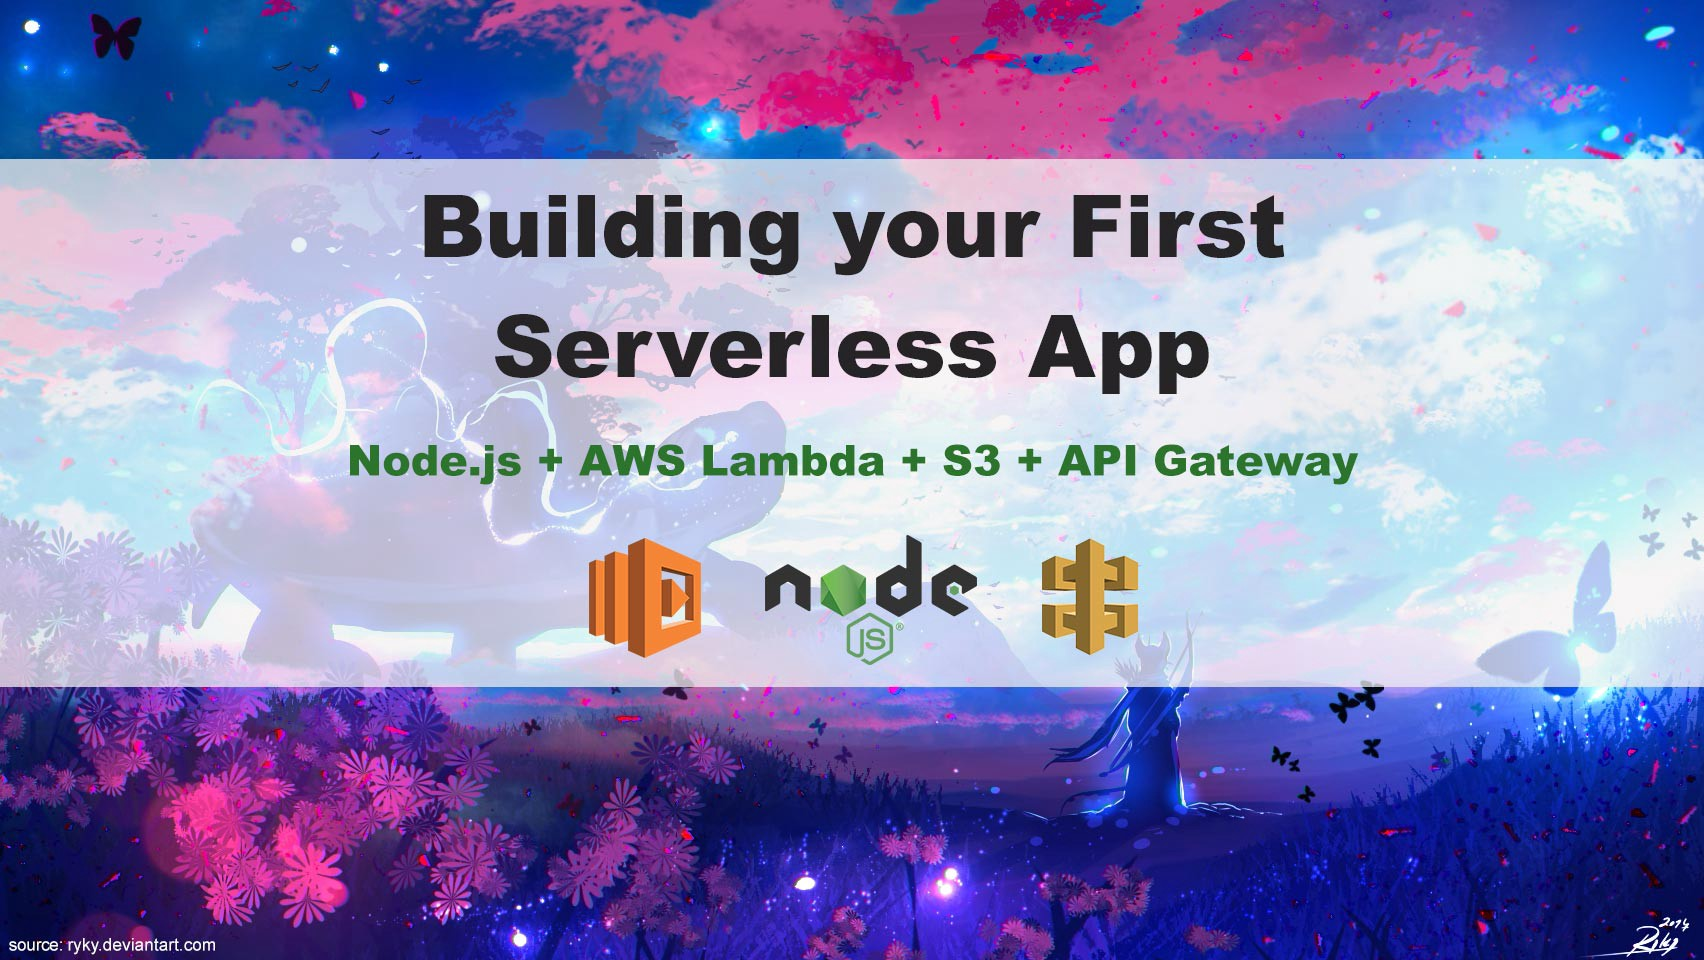 Building your First Serverless App in Node js with AWS